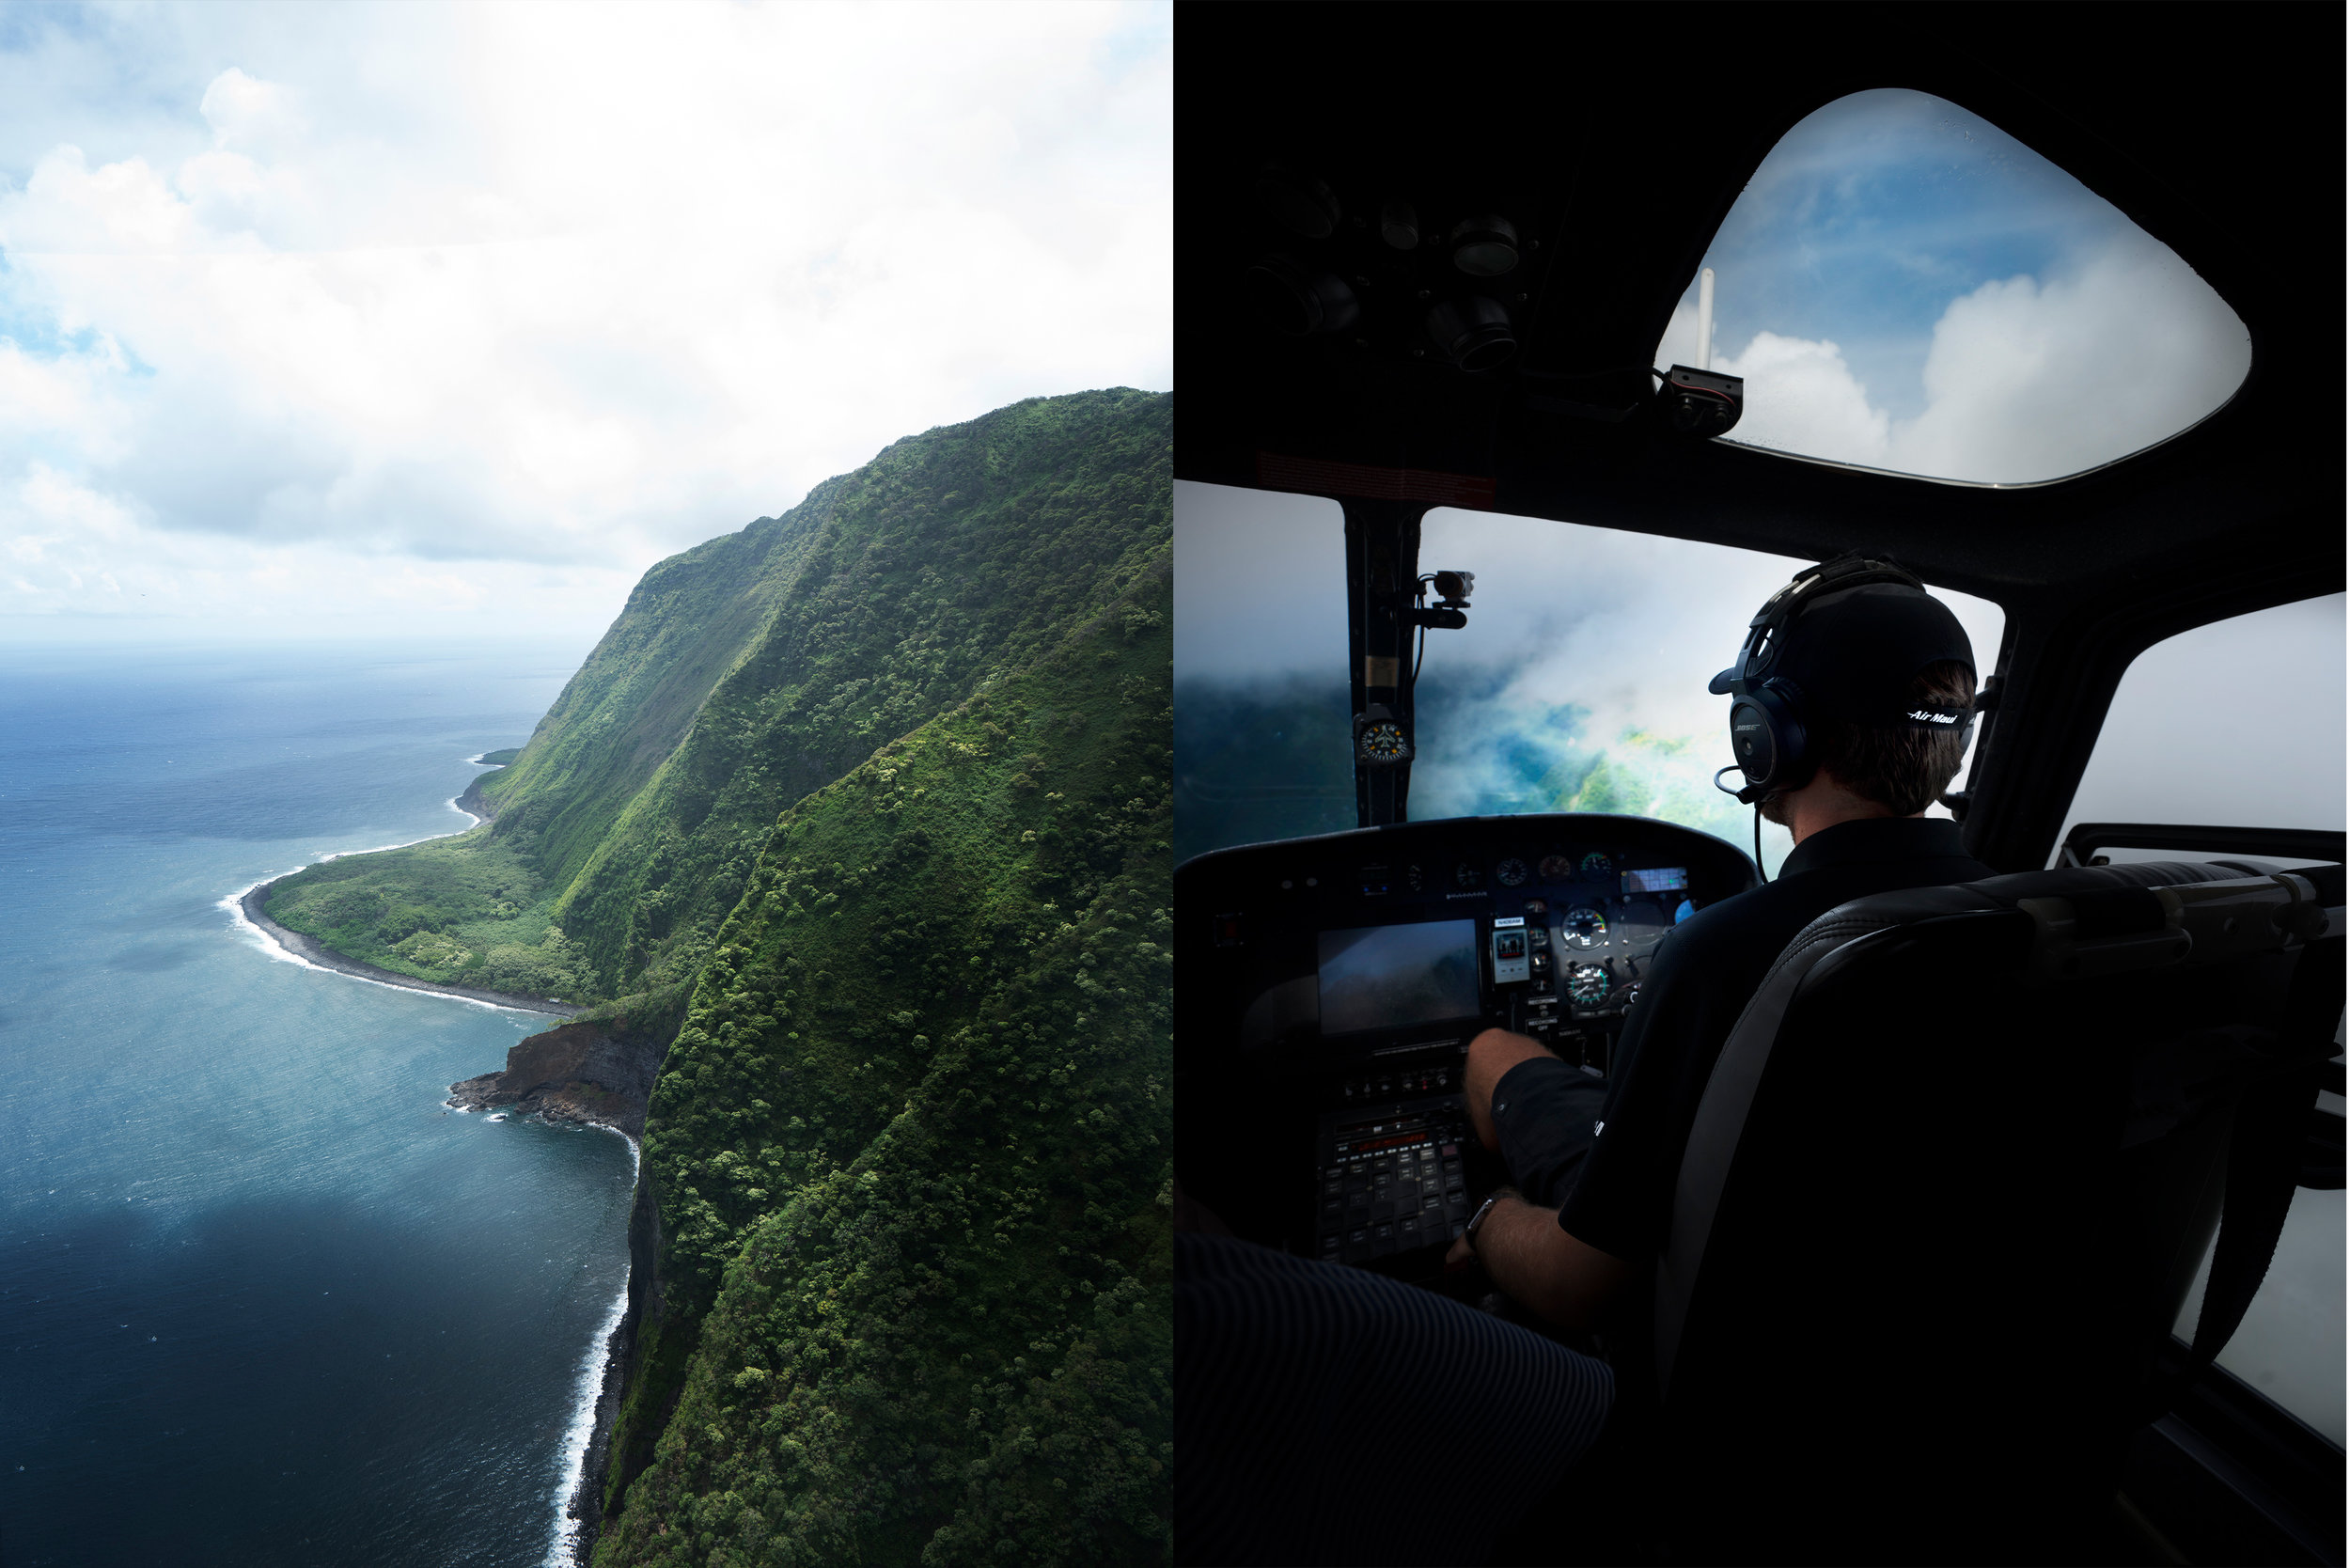 hawaii heli2.jpg